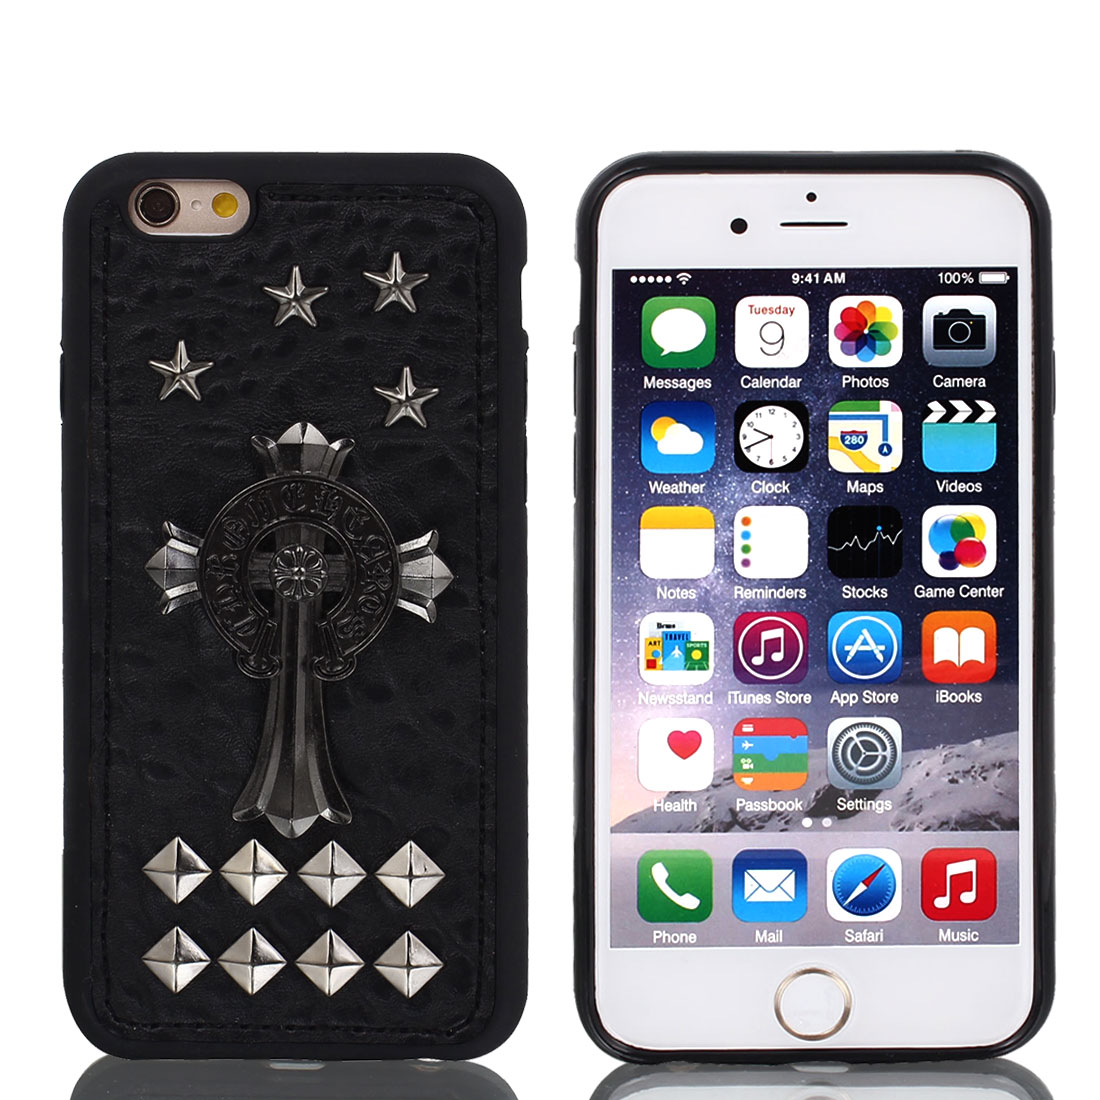 Faux Leather Rivet Decor Guard Case Shell Cover Black w Film for iPhone 6 4.7""